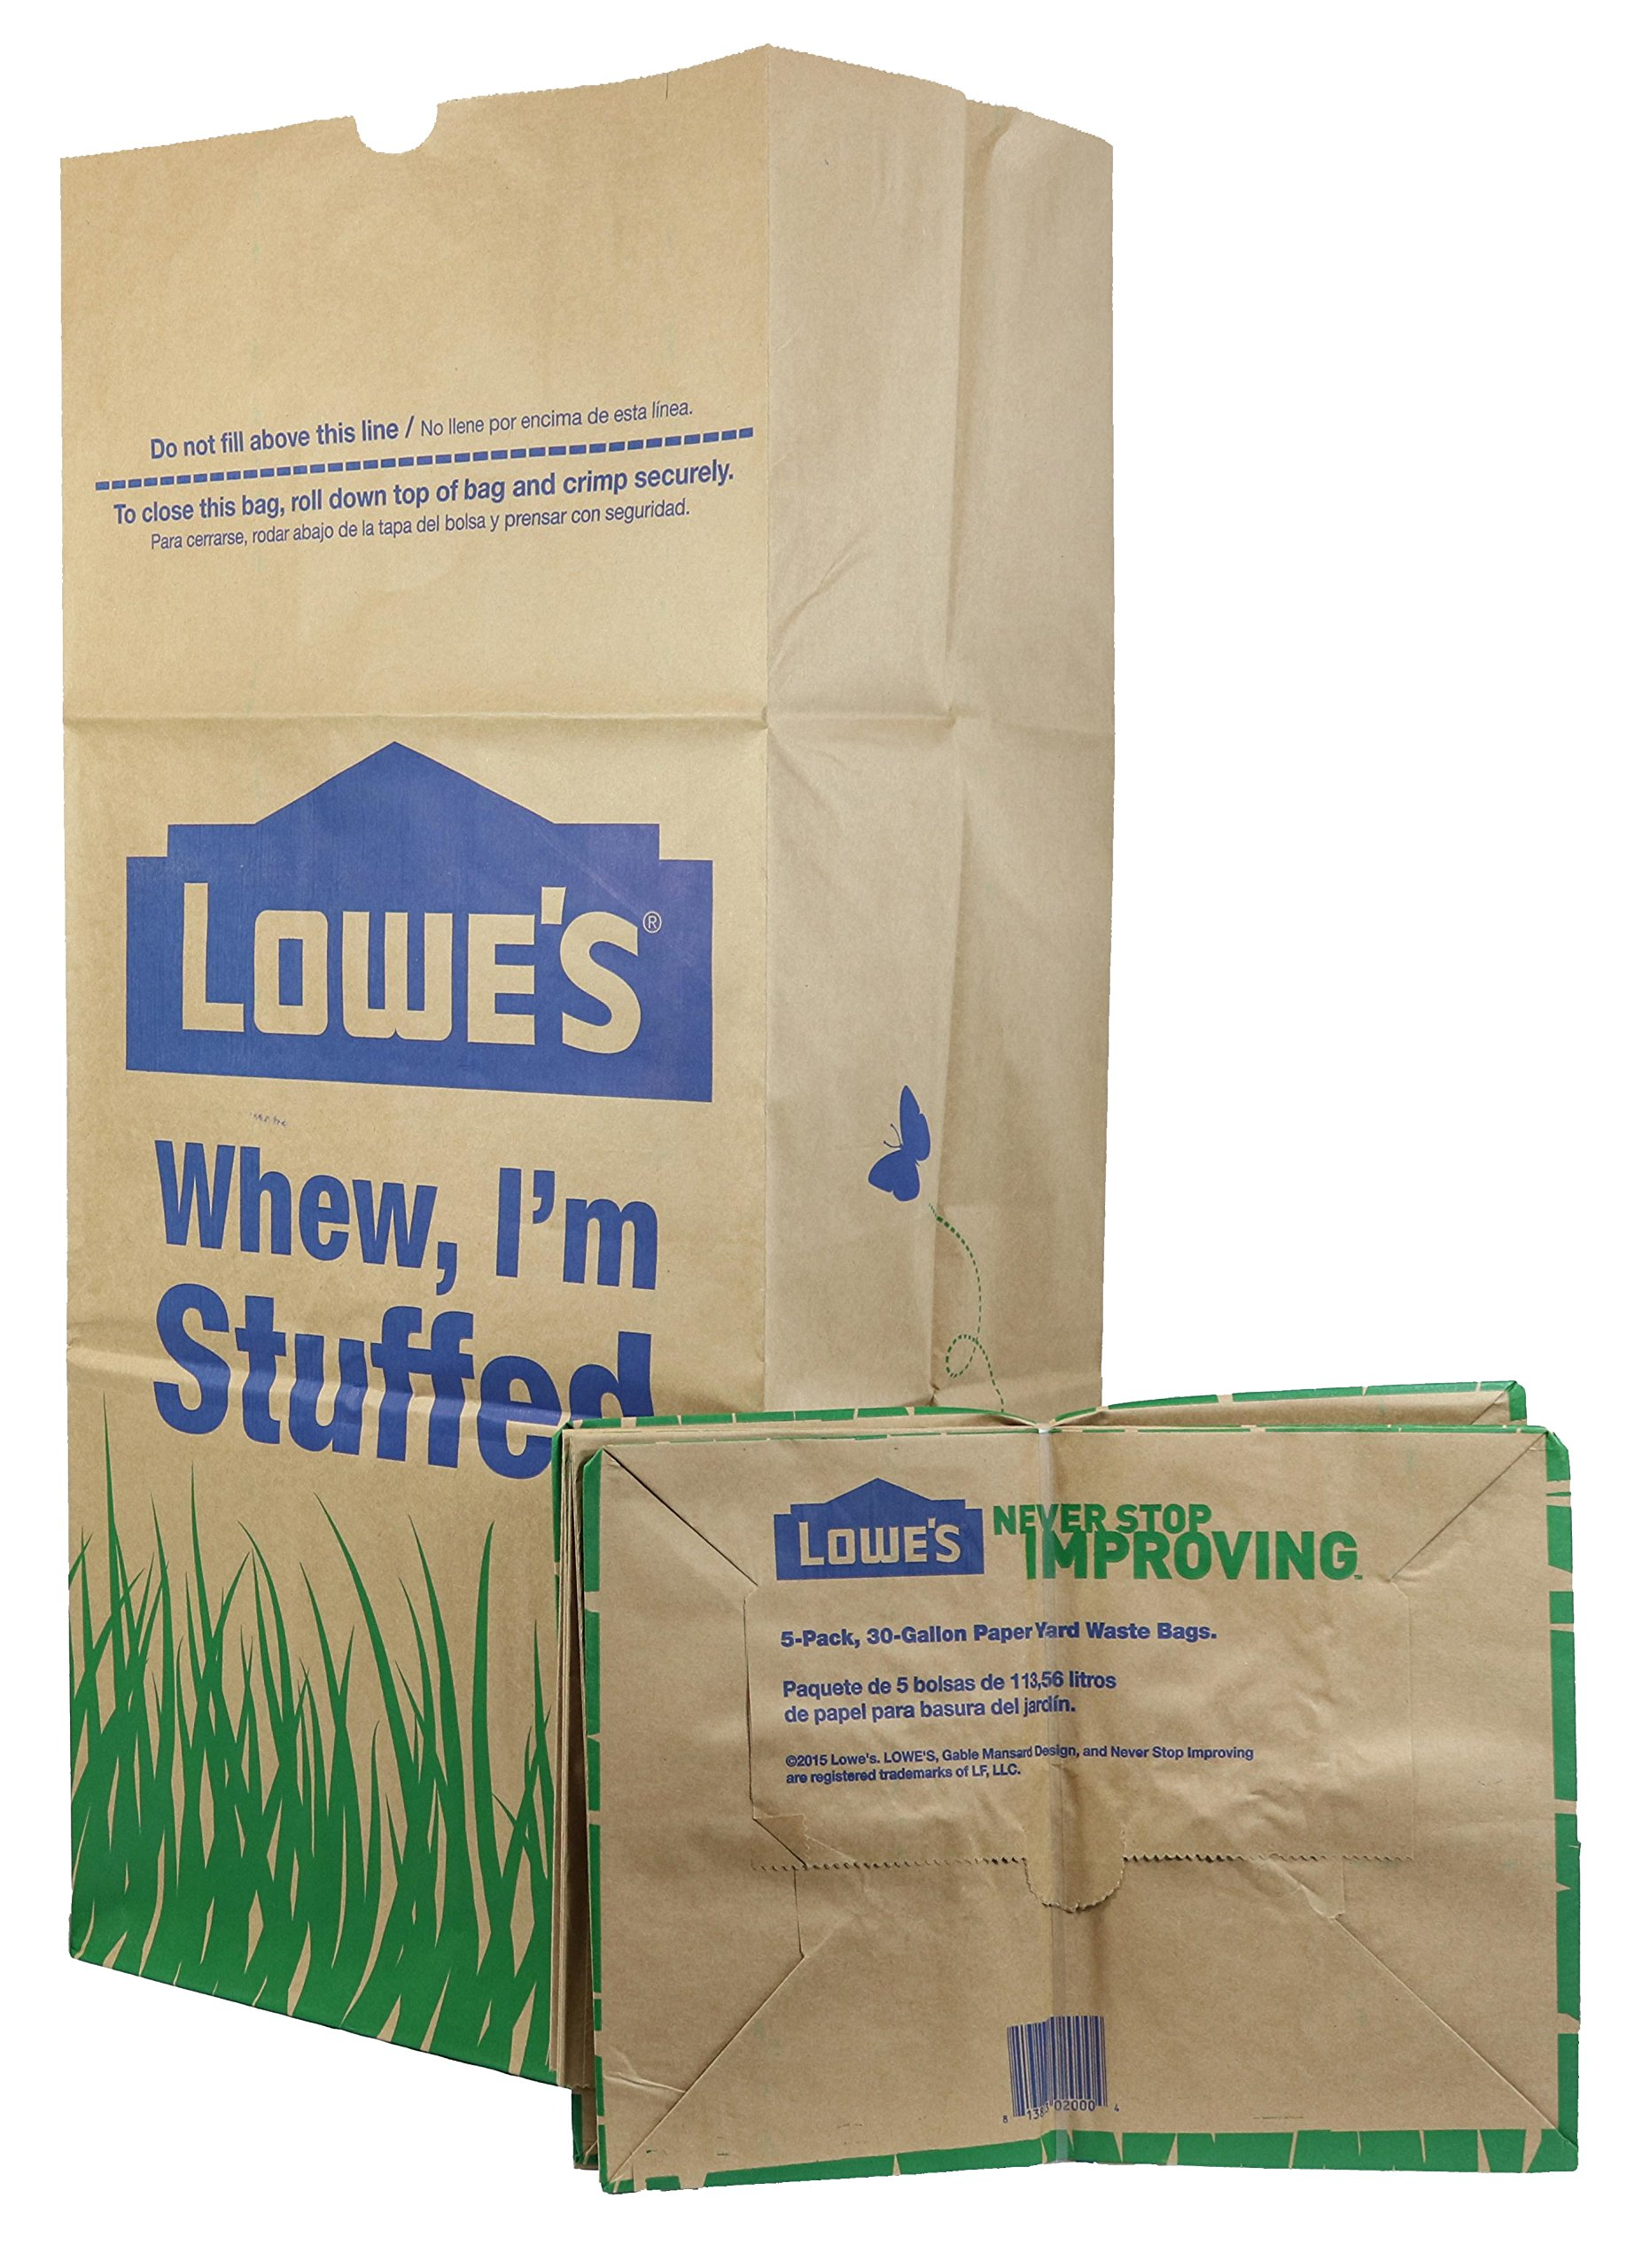 Lowe's H&PC-75419 (25 Count) 30 Gallon Heavy Duty Brown Paper Lawn and Refuse Bags for Home, Original Version by Lowe's (Image #1)